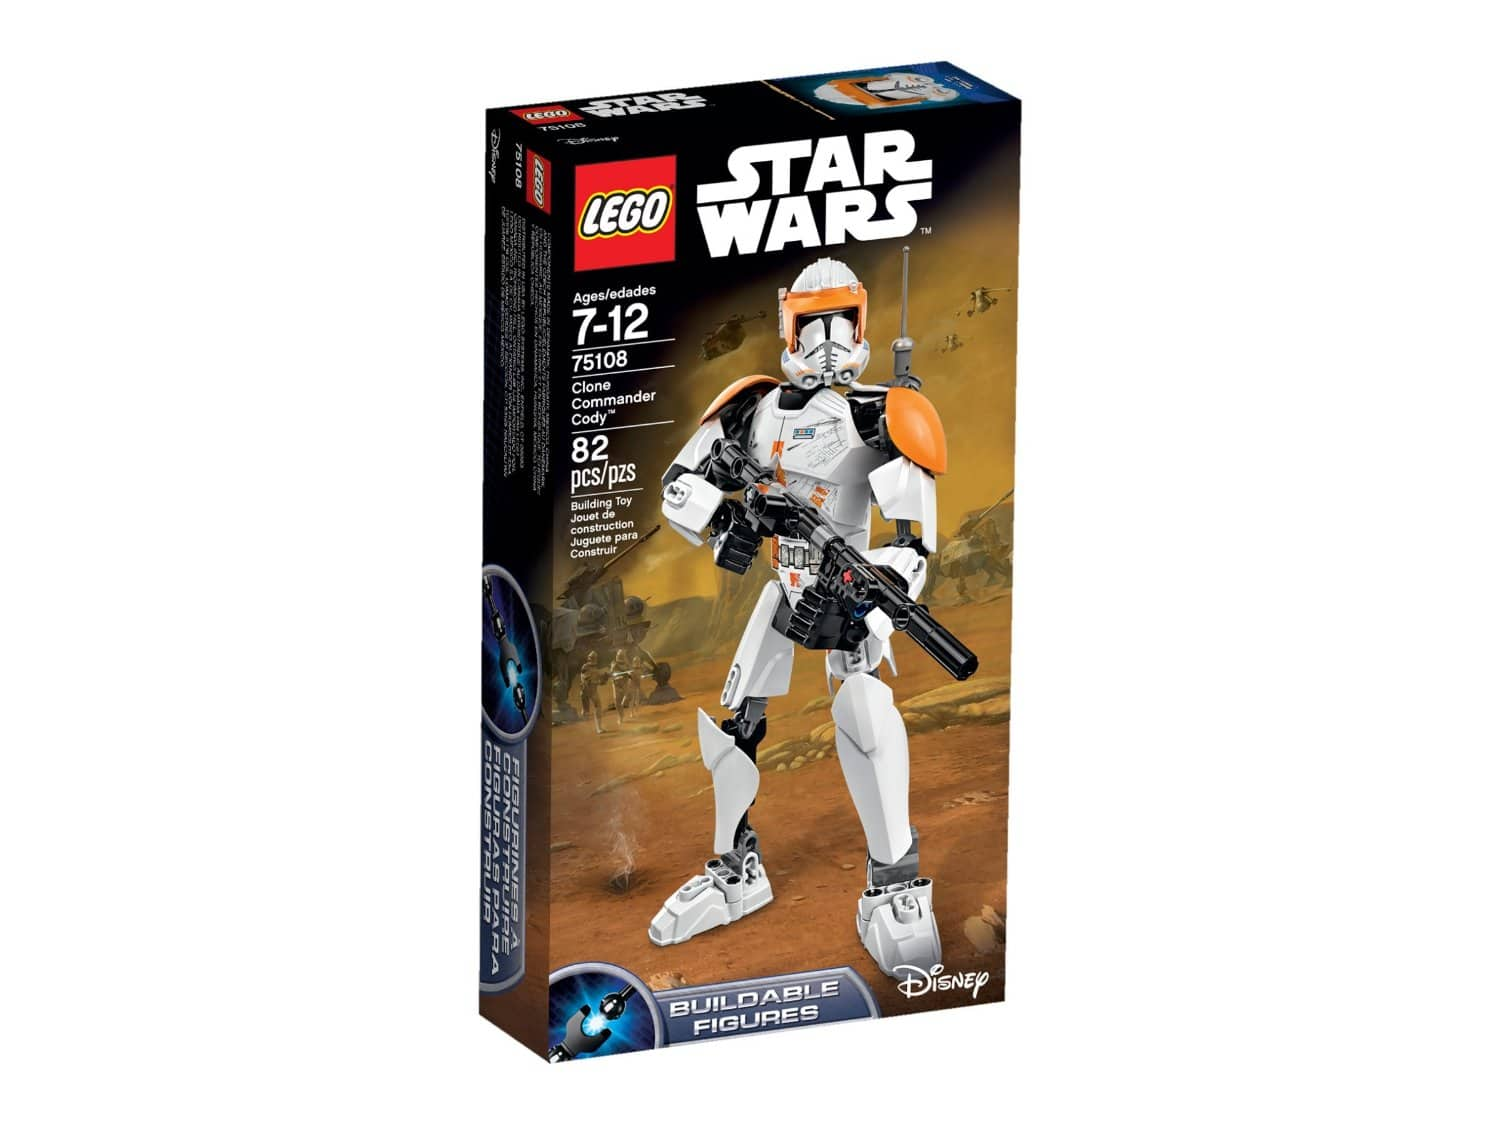 Lego Star Wars Clone Commander Cody Building Kit (75108)  $14 + Free Store Pickup